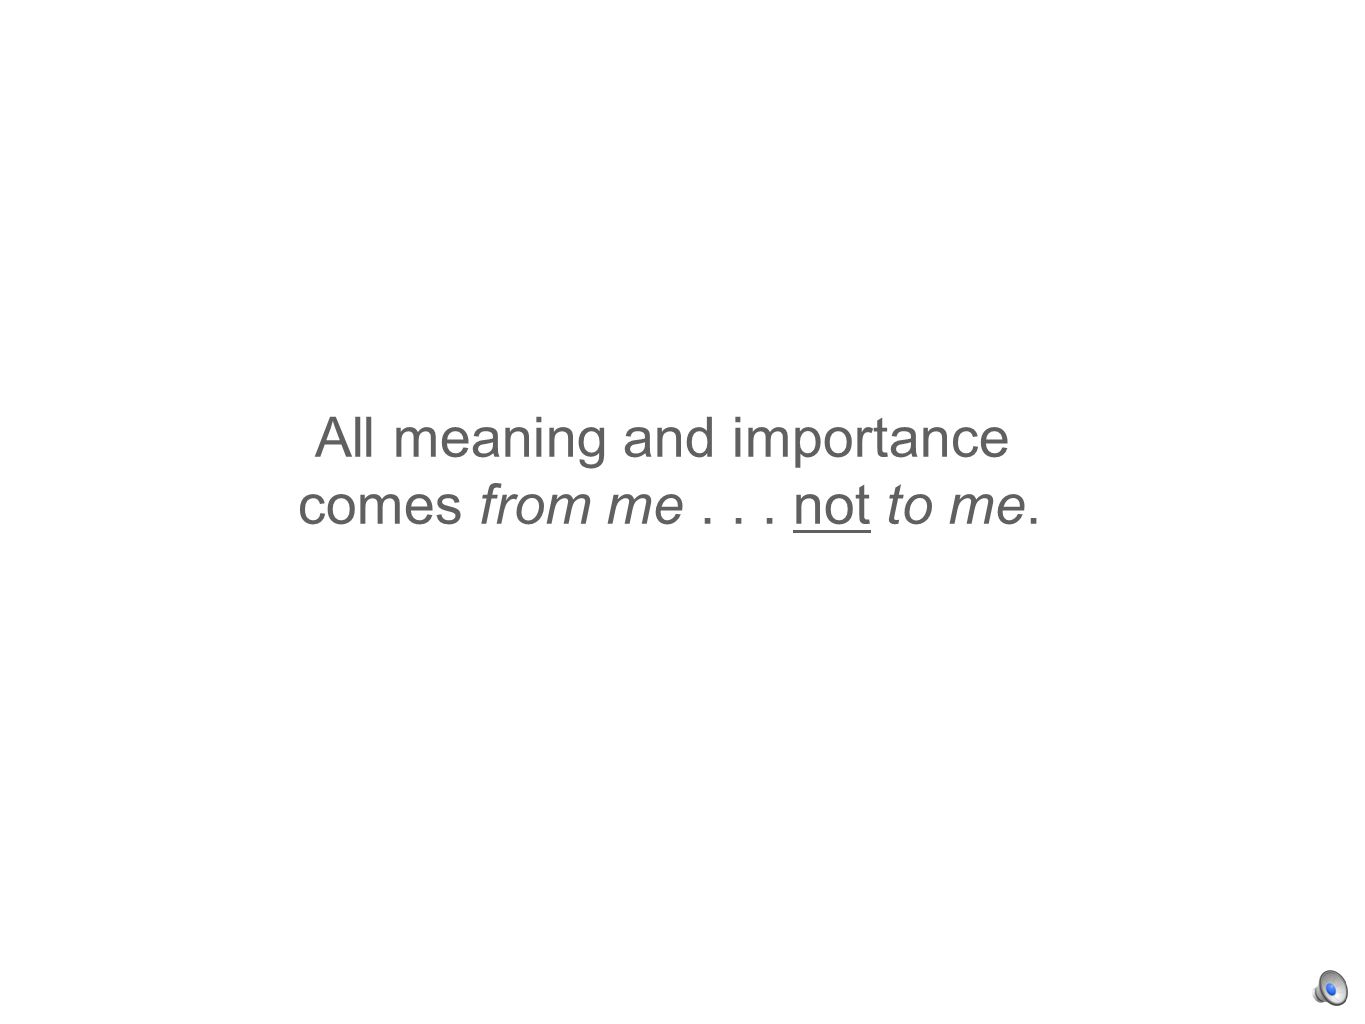 All meaning and importance comes from me... not to me.